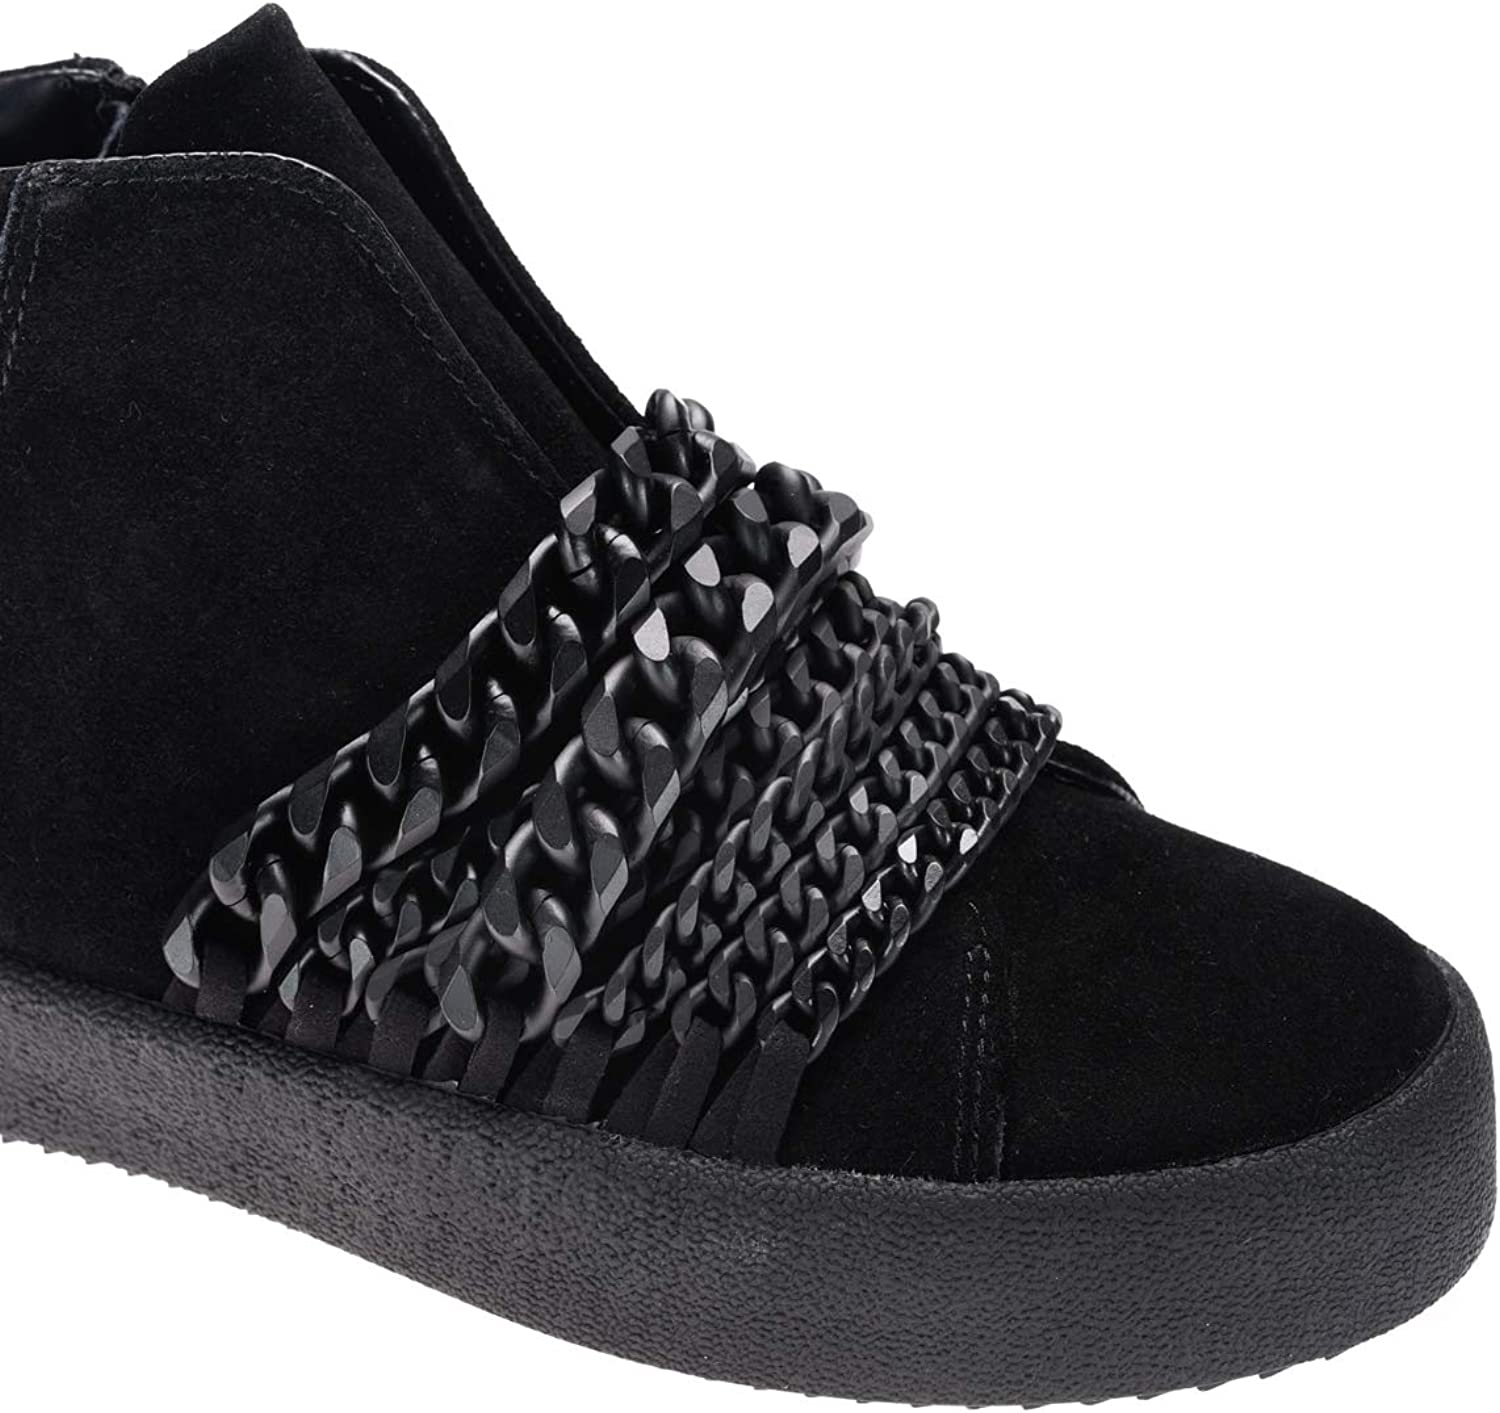 New Kendall and Kylie Black Shiny Duke Chain Link Sneakers